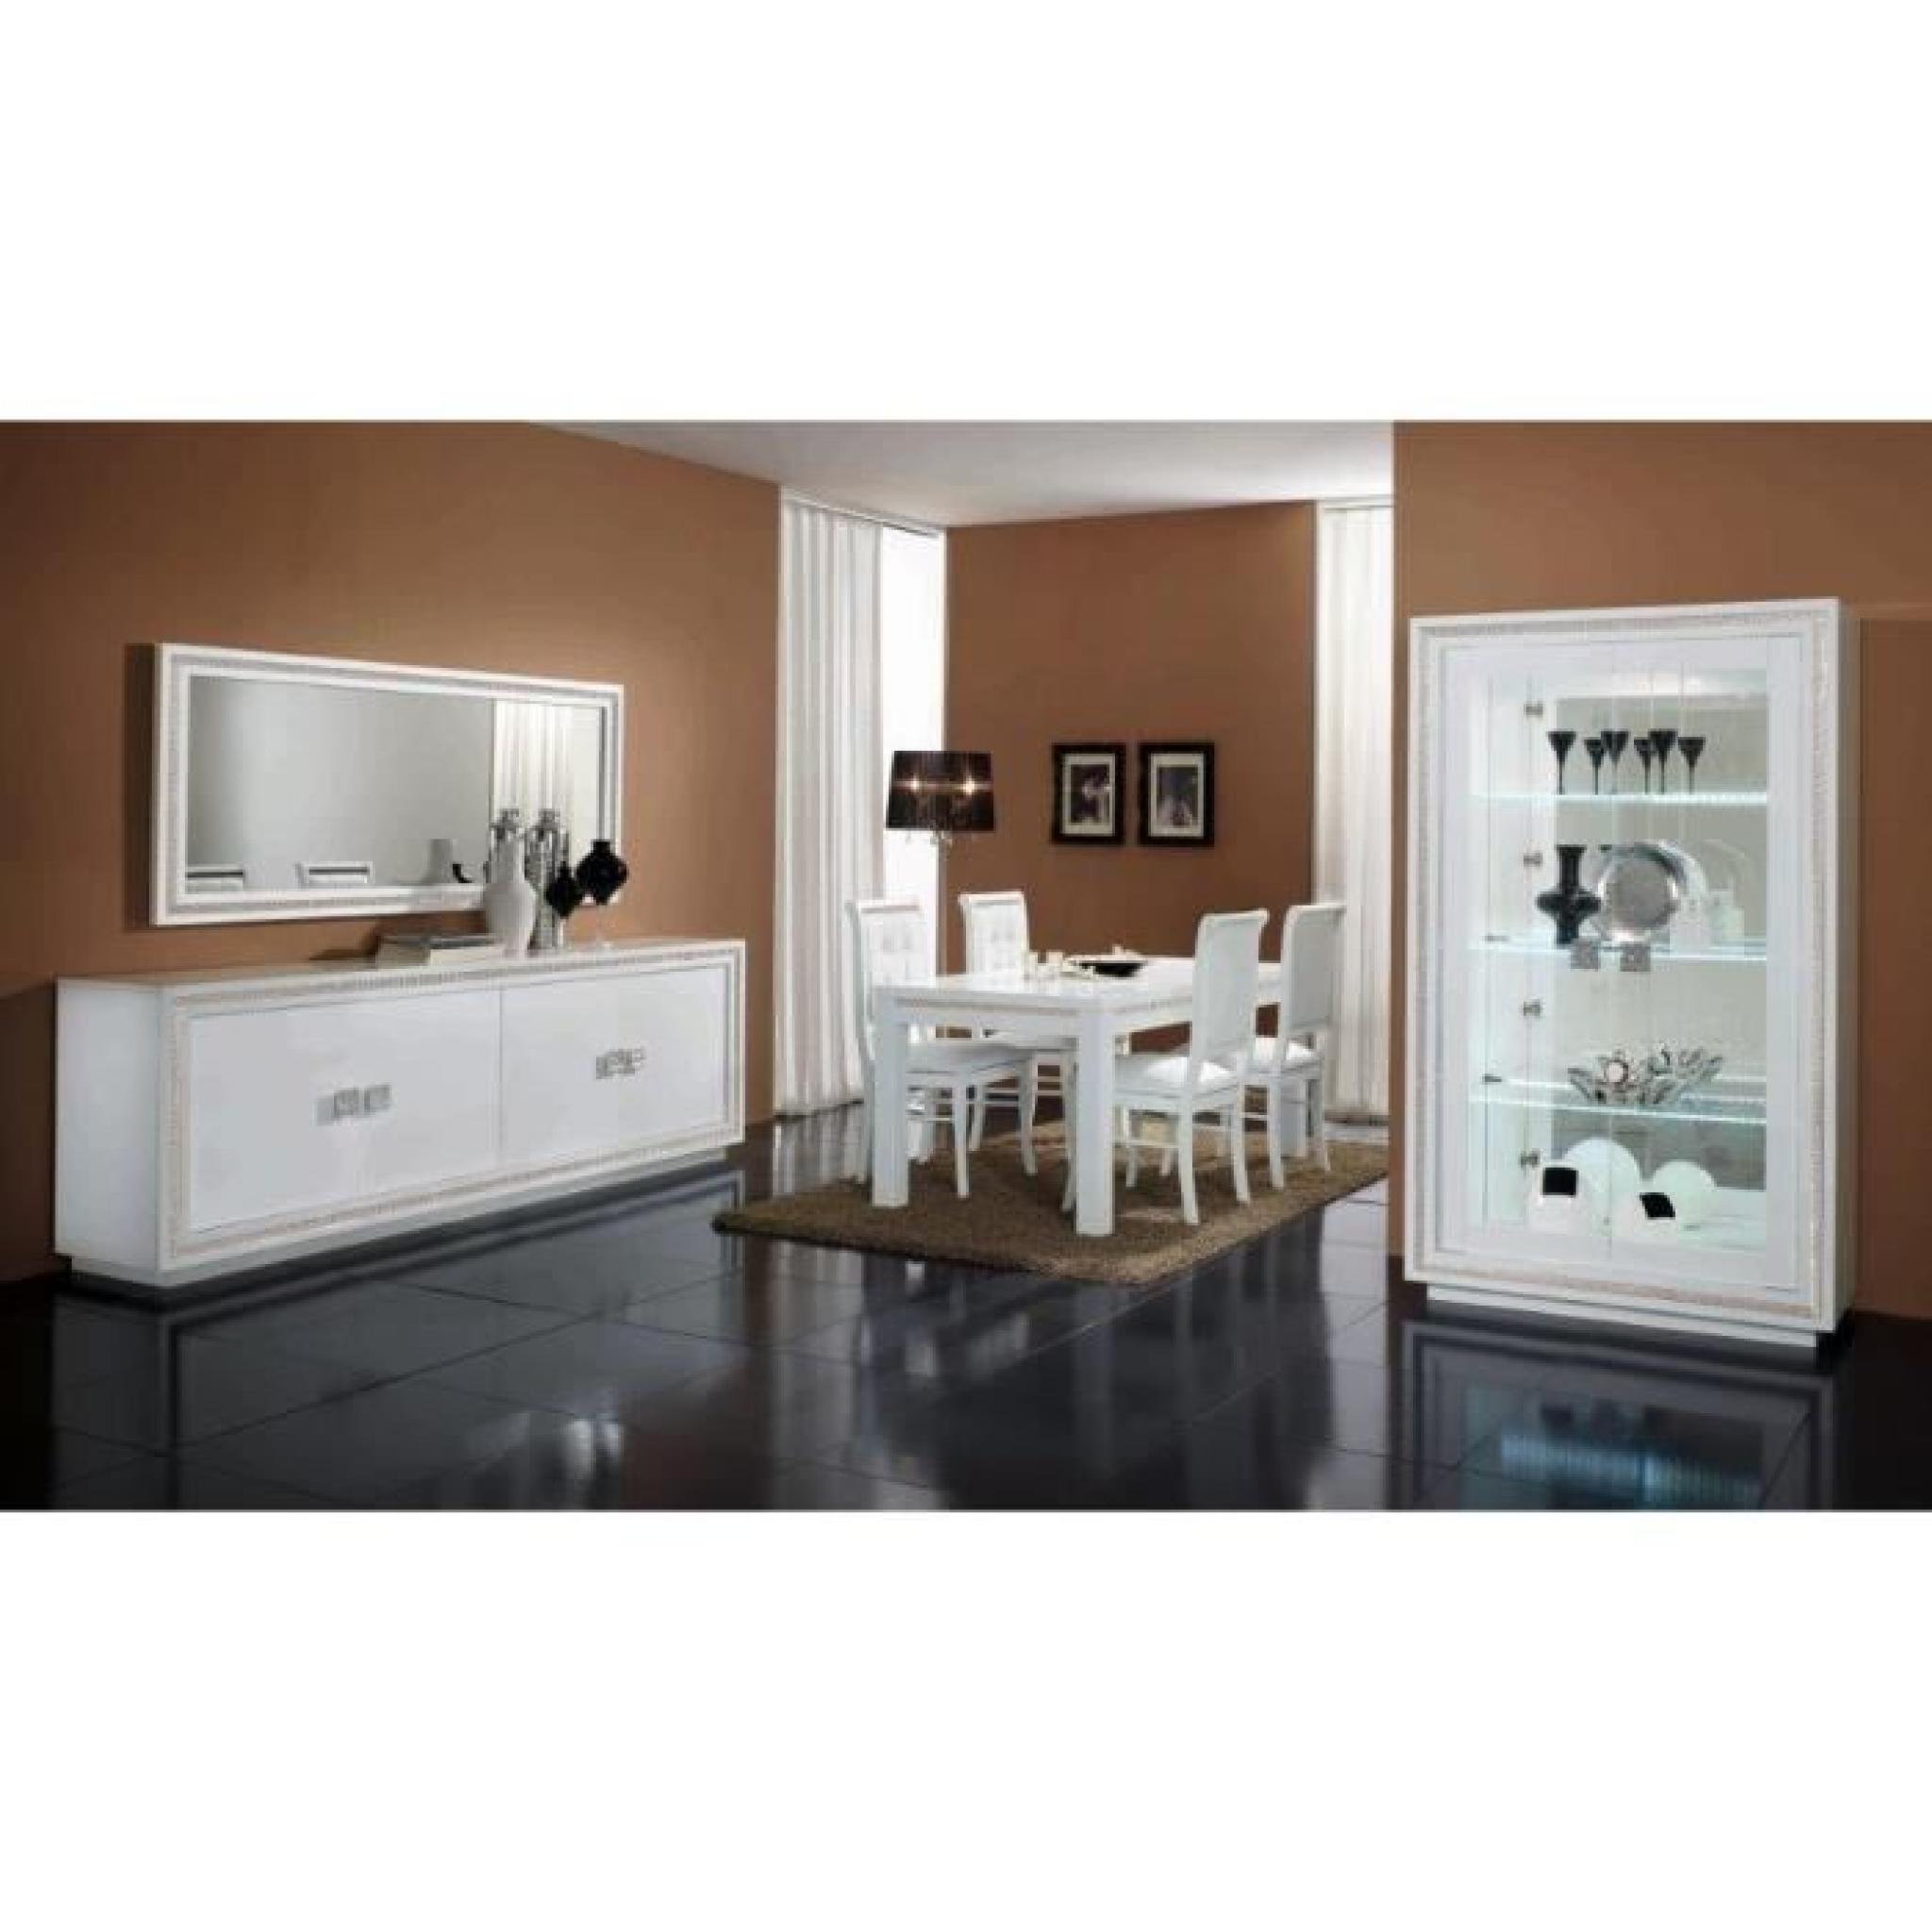 prestige laquee blanche ensemble salle a manger vitrine. Black Bedroom Furniture Sets. Home Design Ideas